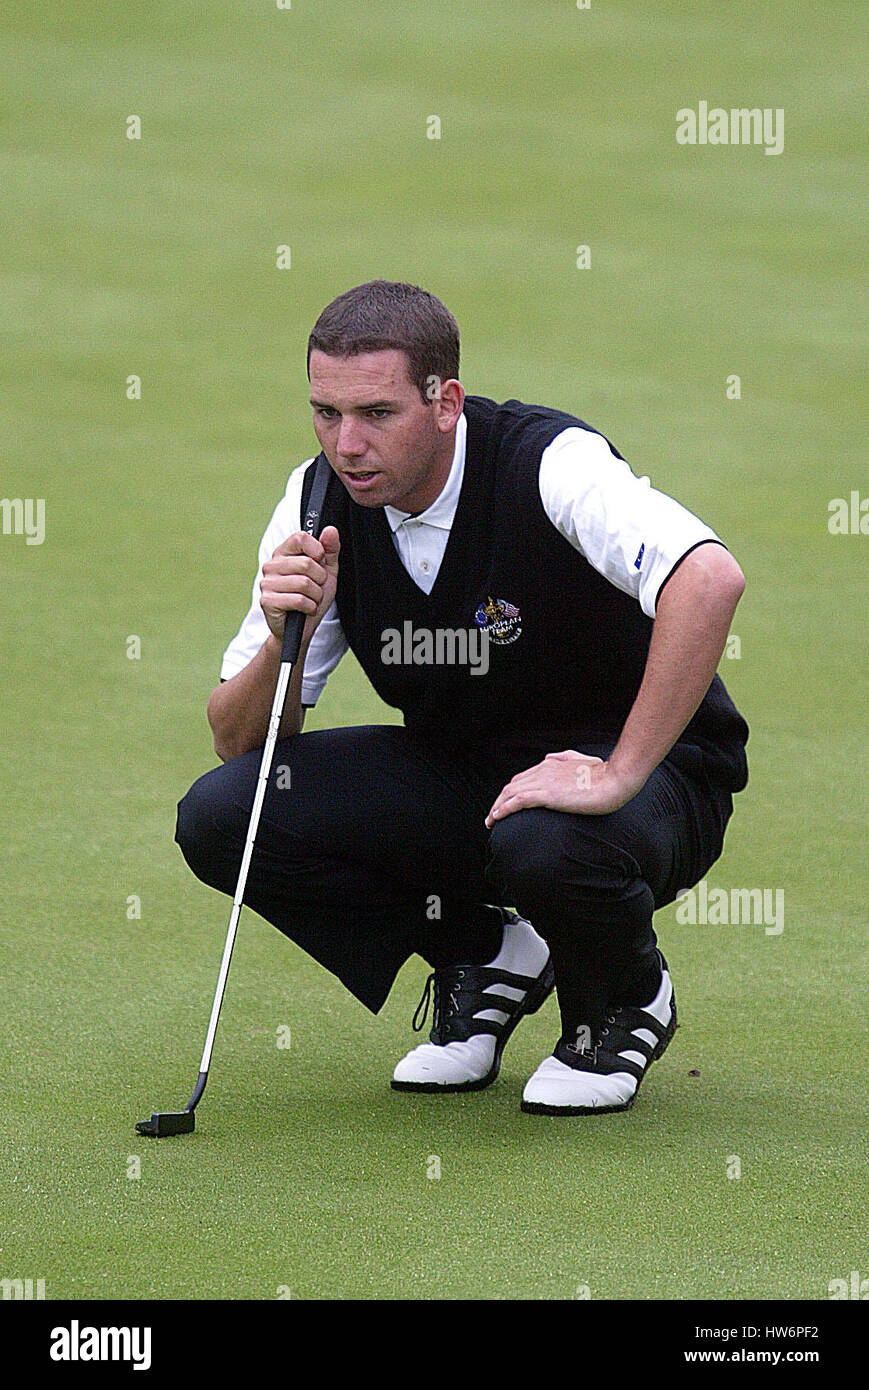 SERGIO GARCIA RYDER CUP 02 10TH GREEN THE BELFRY SUTTON COLDFIELD BIRMINGHAM ENGLAND 28 September 2002 - Stock Image